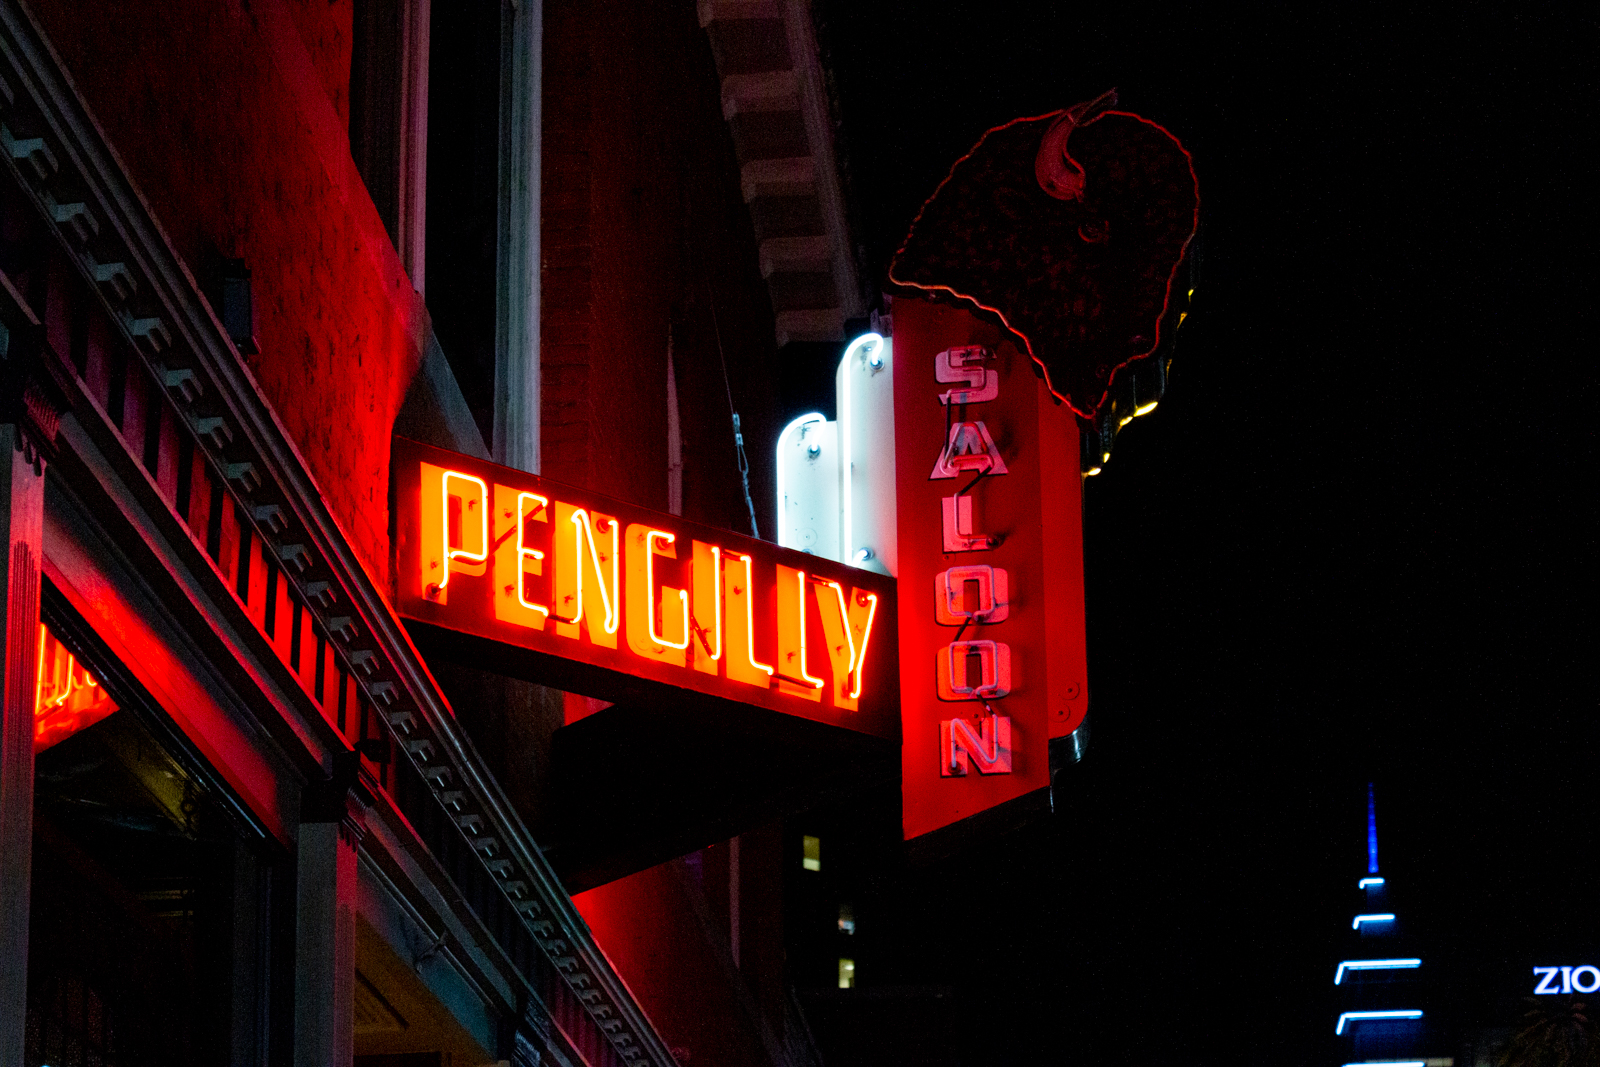 pengilly saloon downtown Boise Idaho